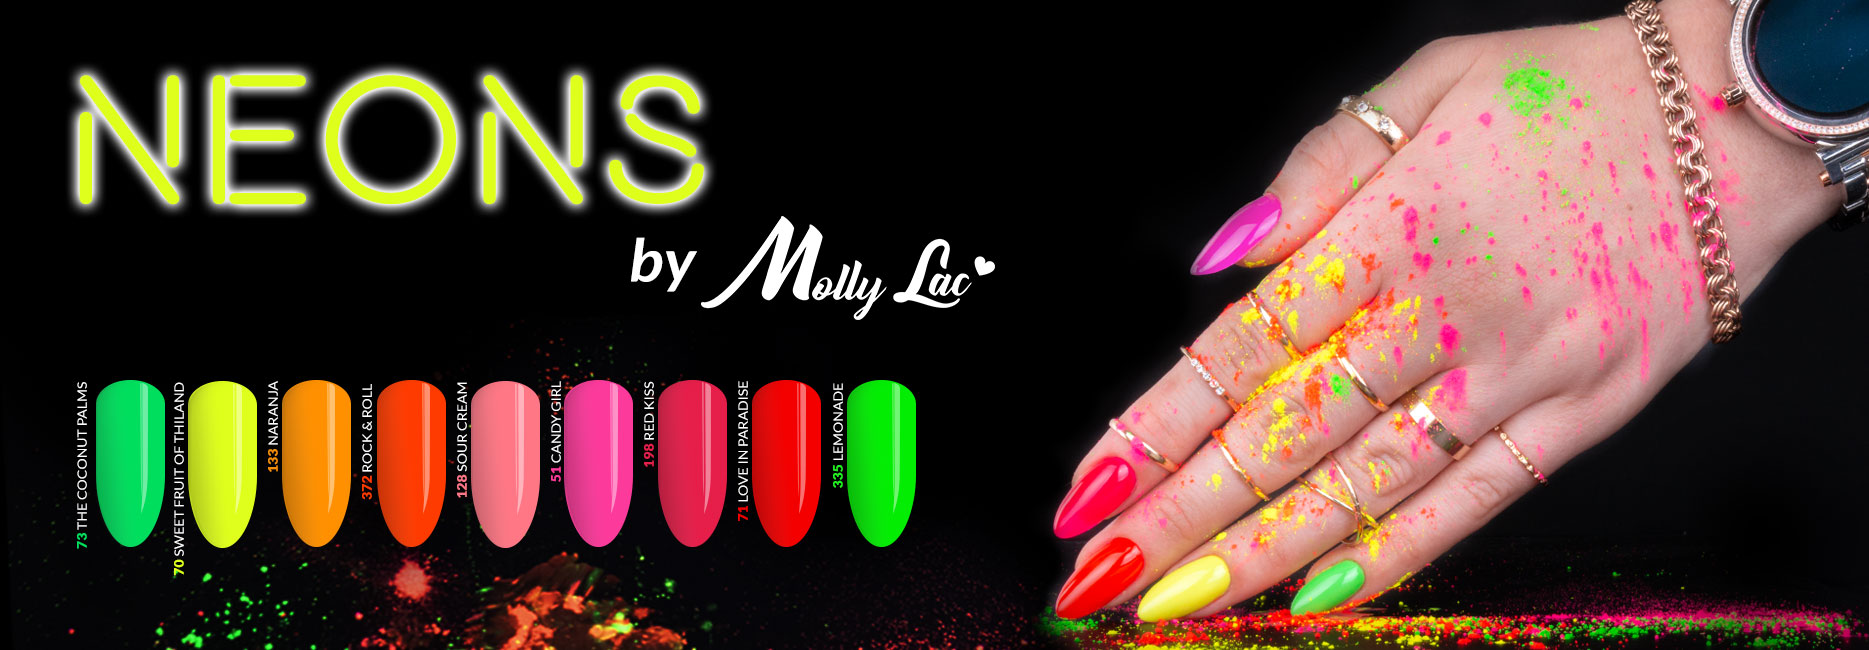 Neons by MollyLac